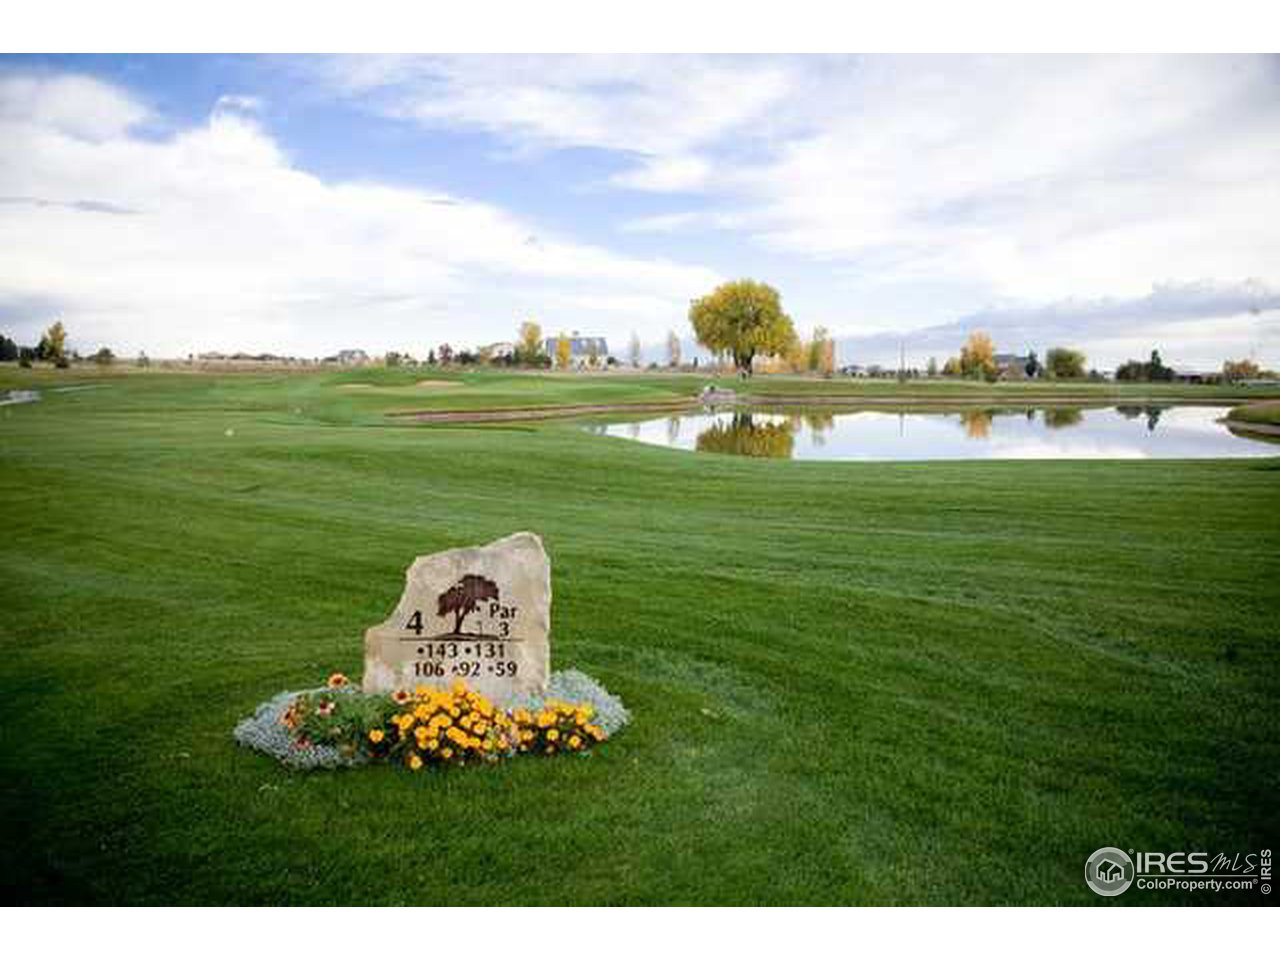 Golf course living in a fabulous location!